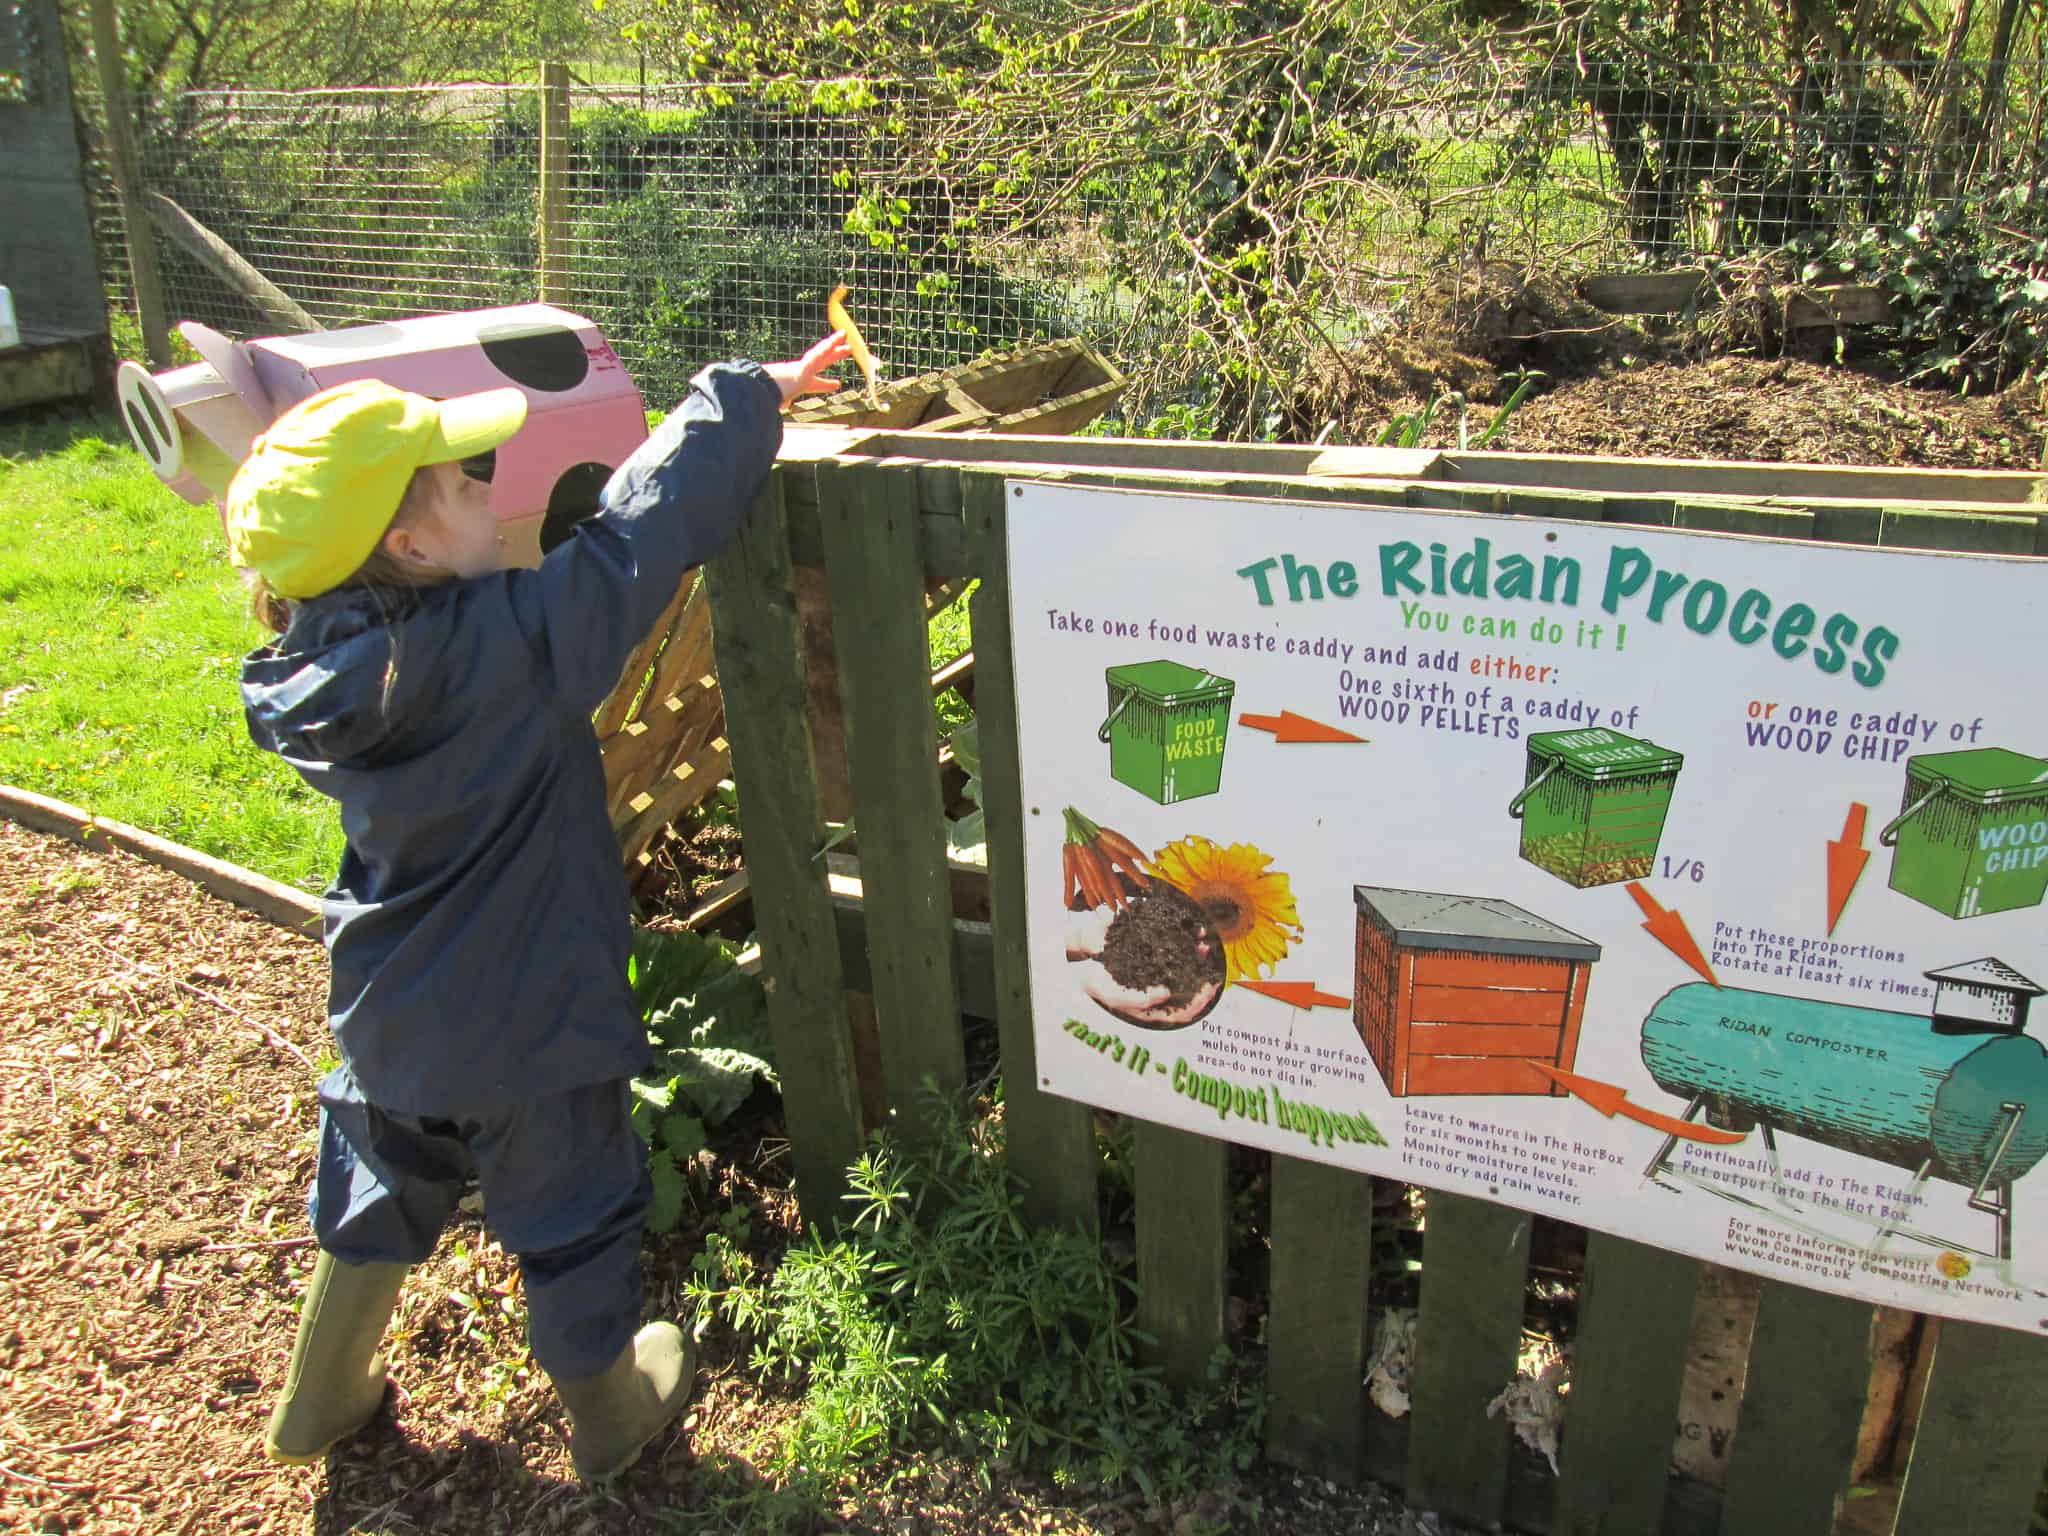 A child puts something in a composting bin